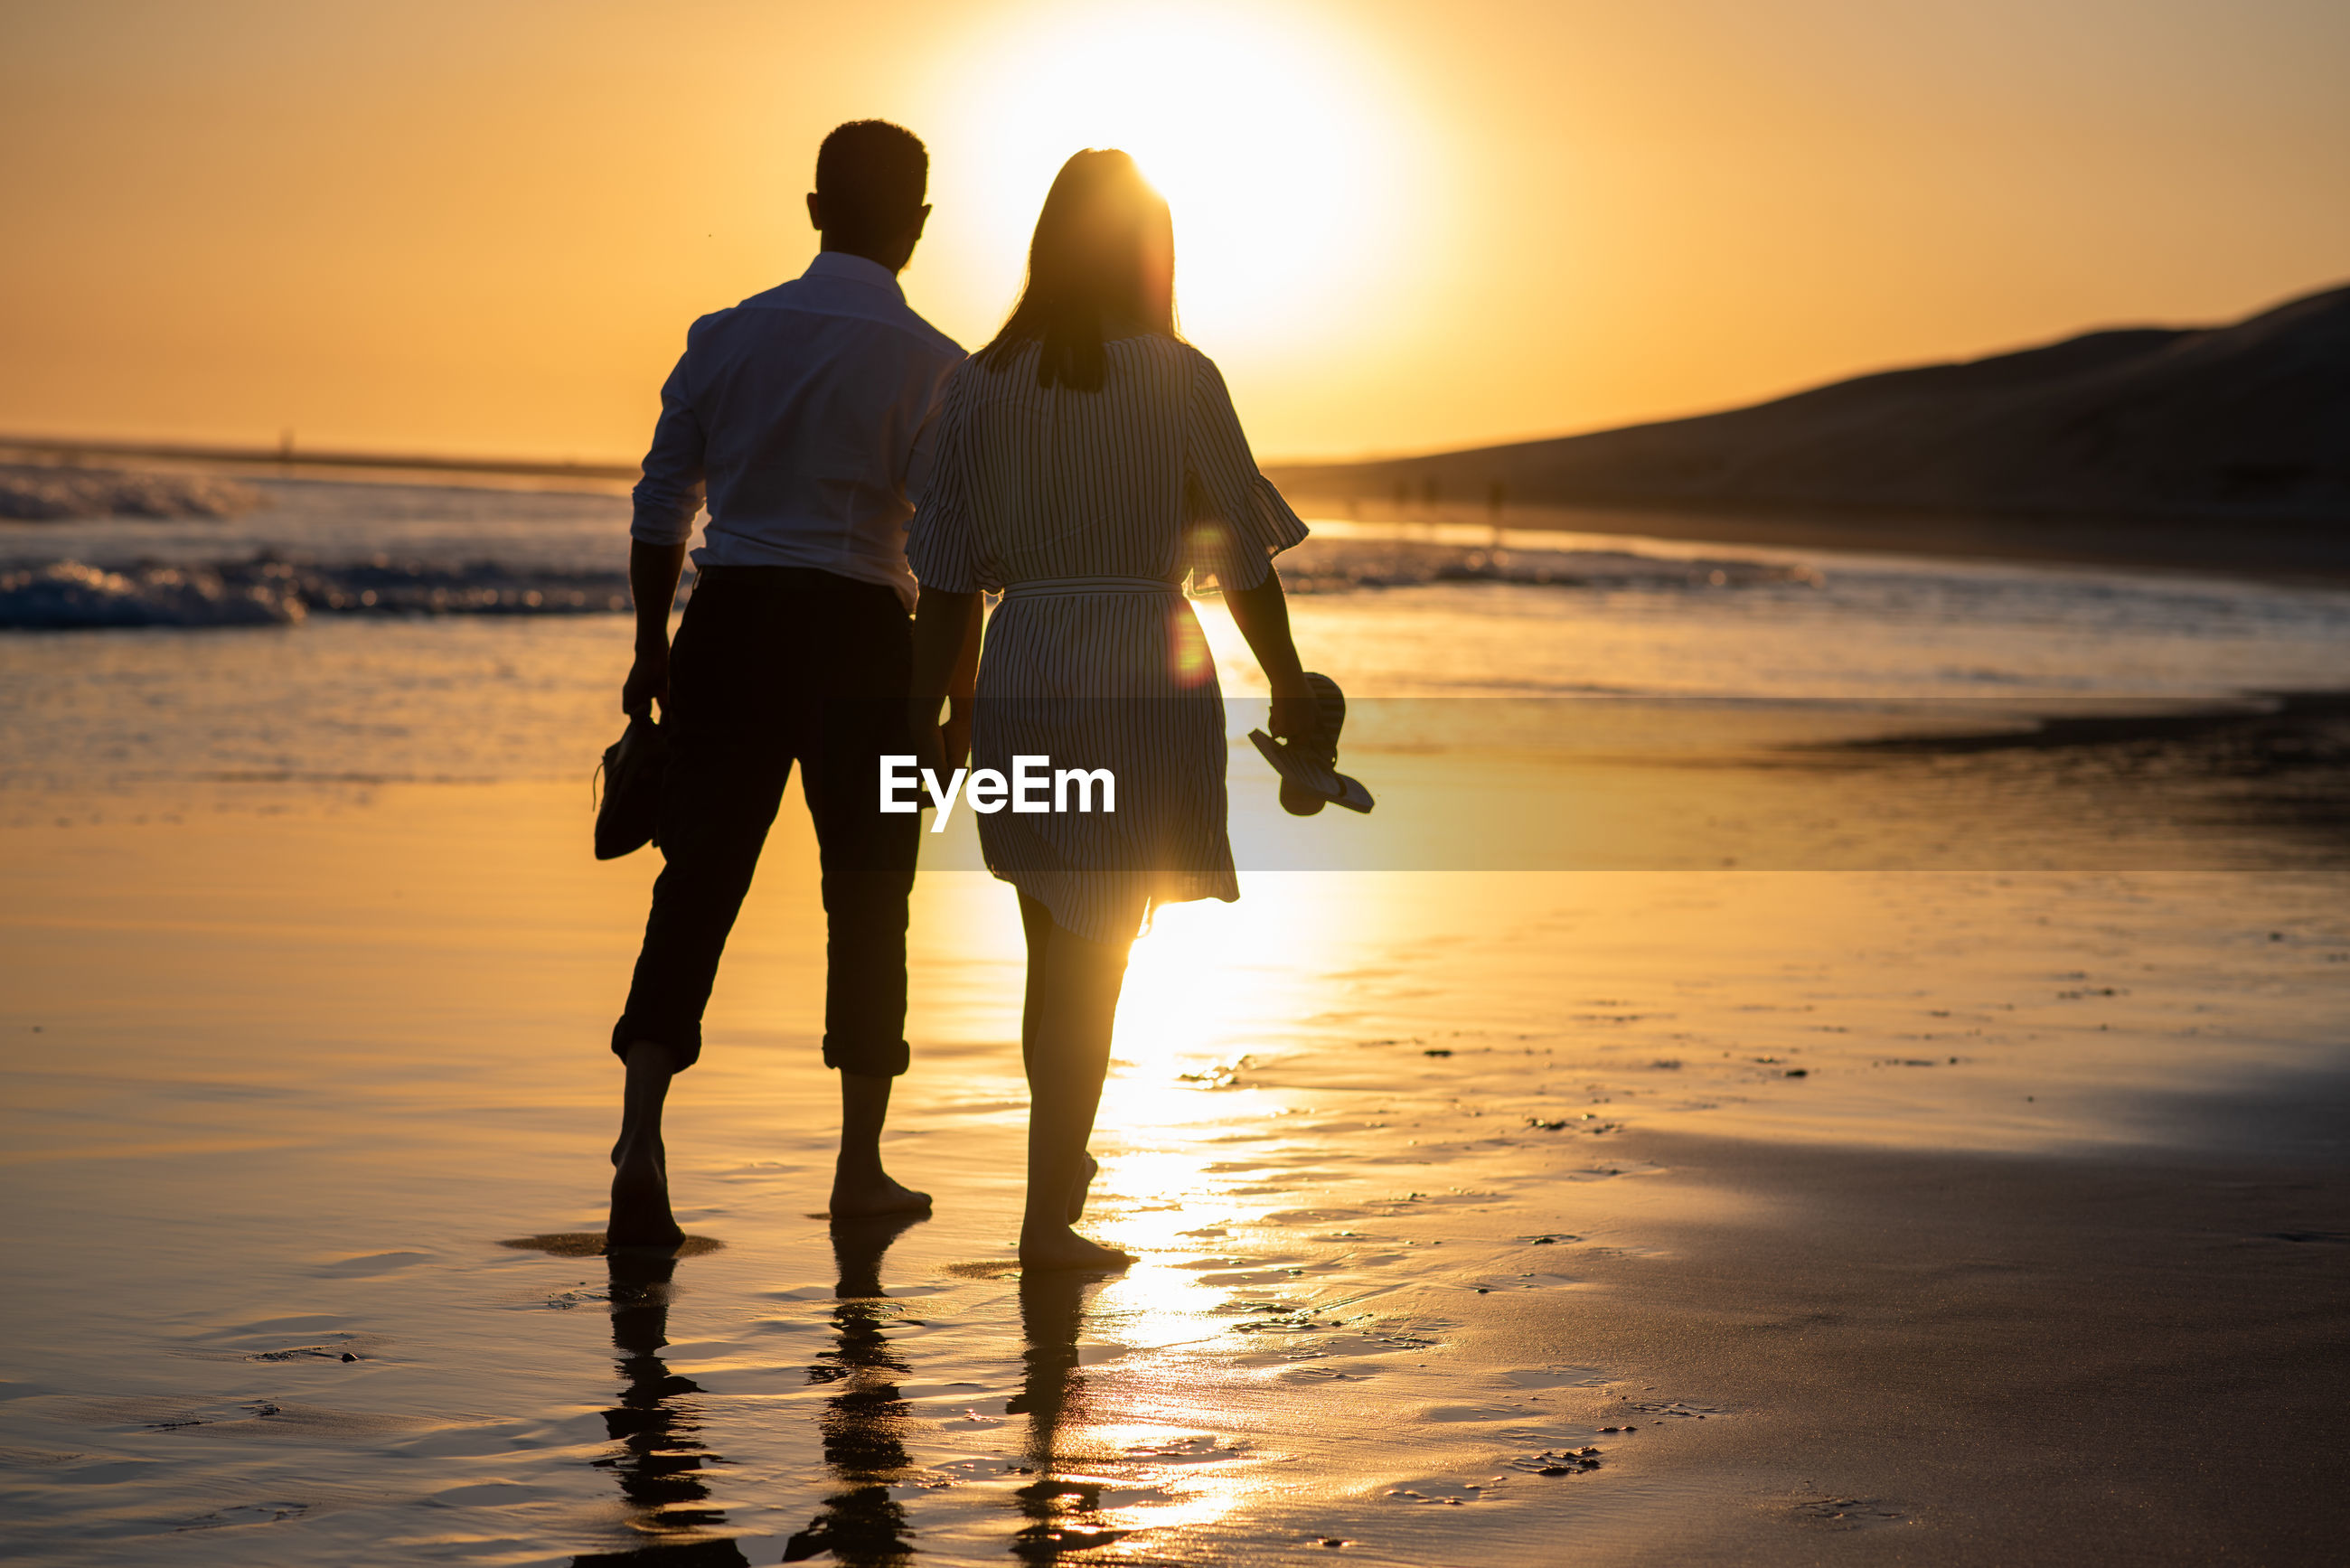 Couple holding hands while walking at beach against sky during sunset